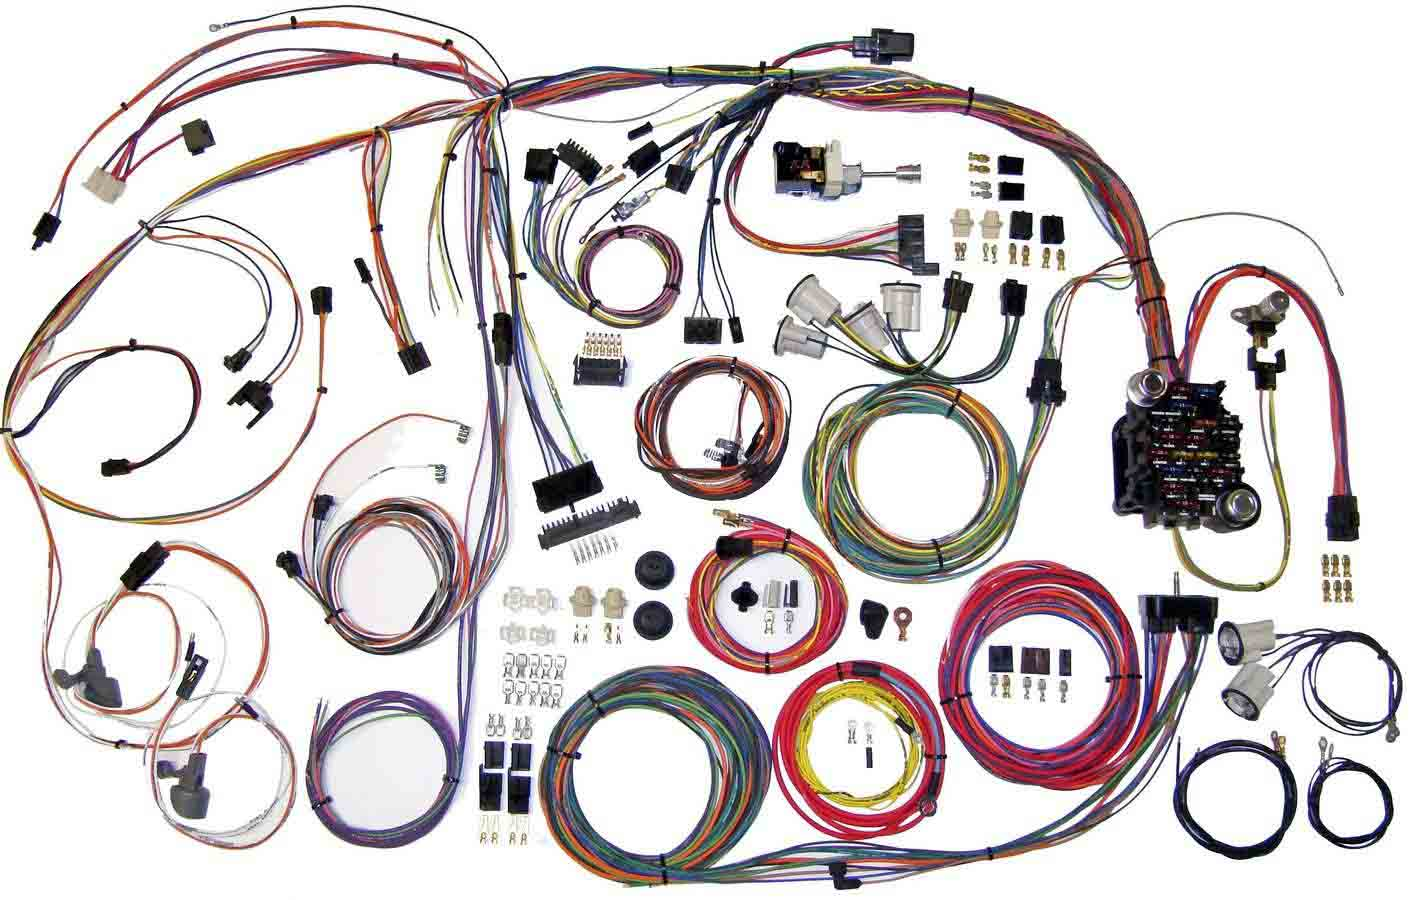 Wiring Diagram Additionally 1968 Mustang Wiring Diagram On 1970